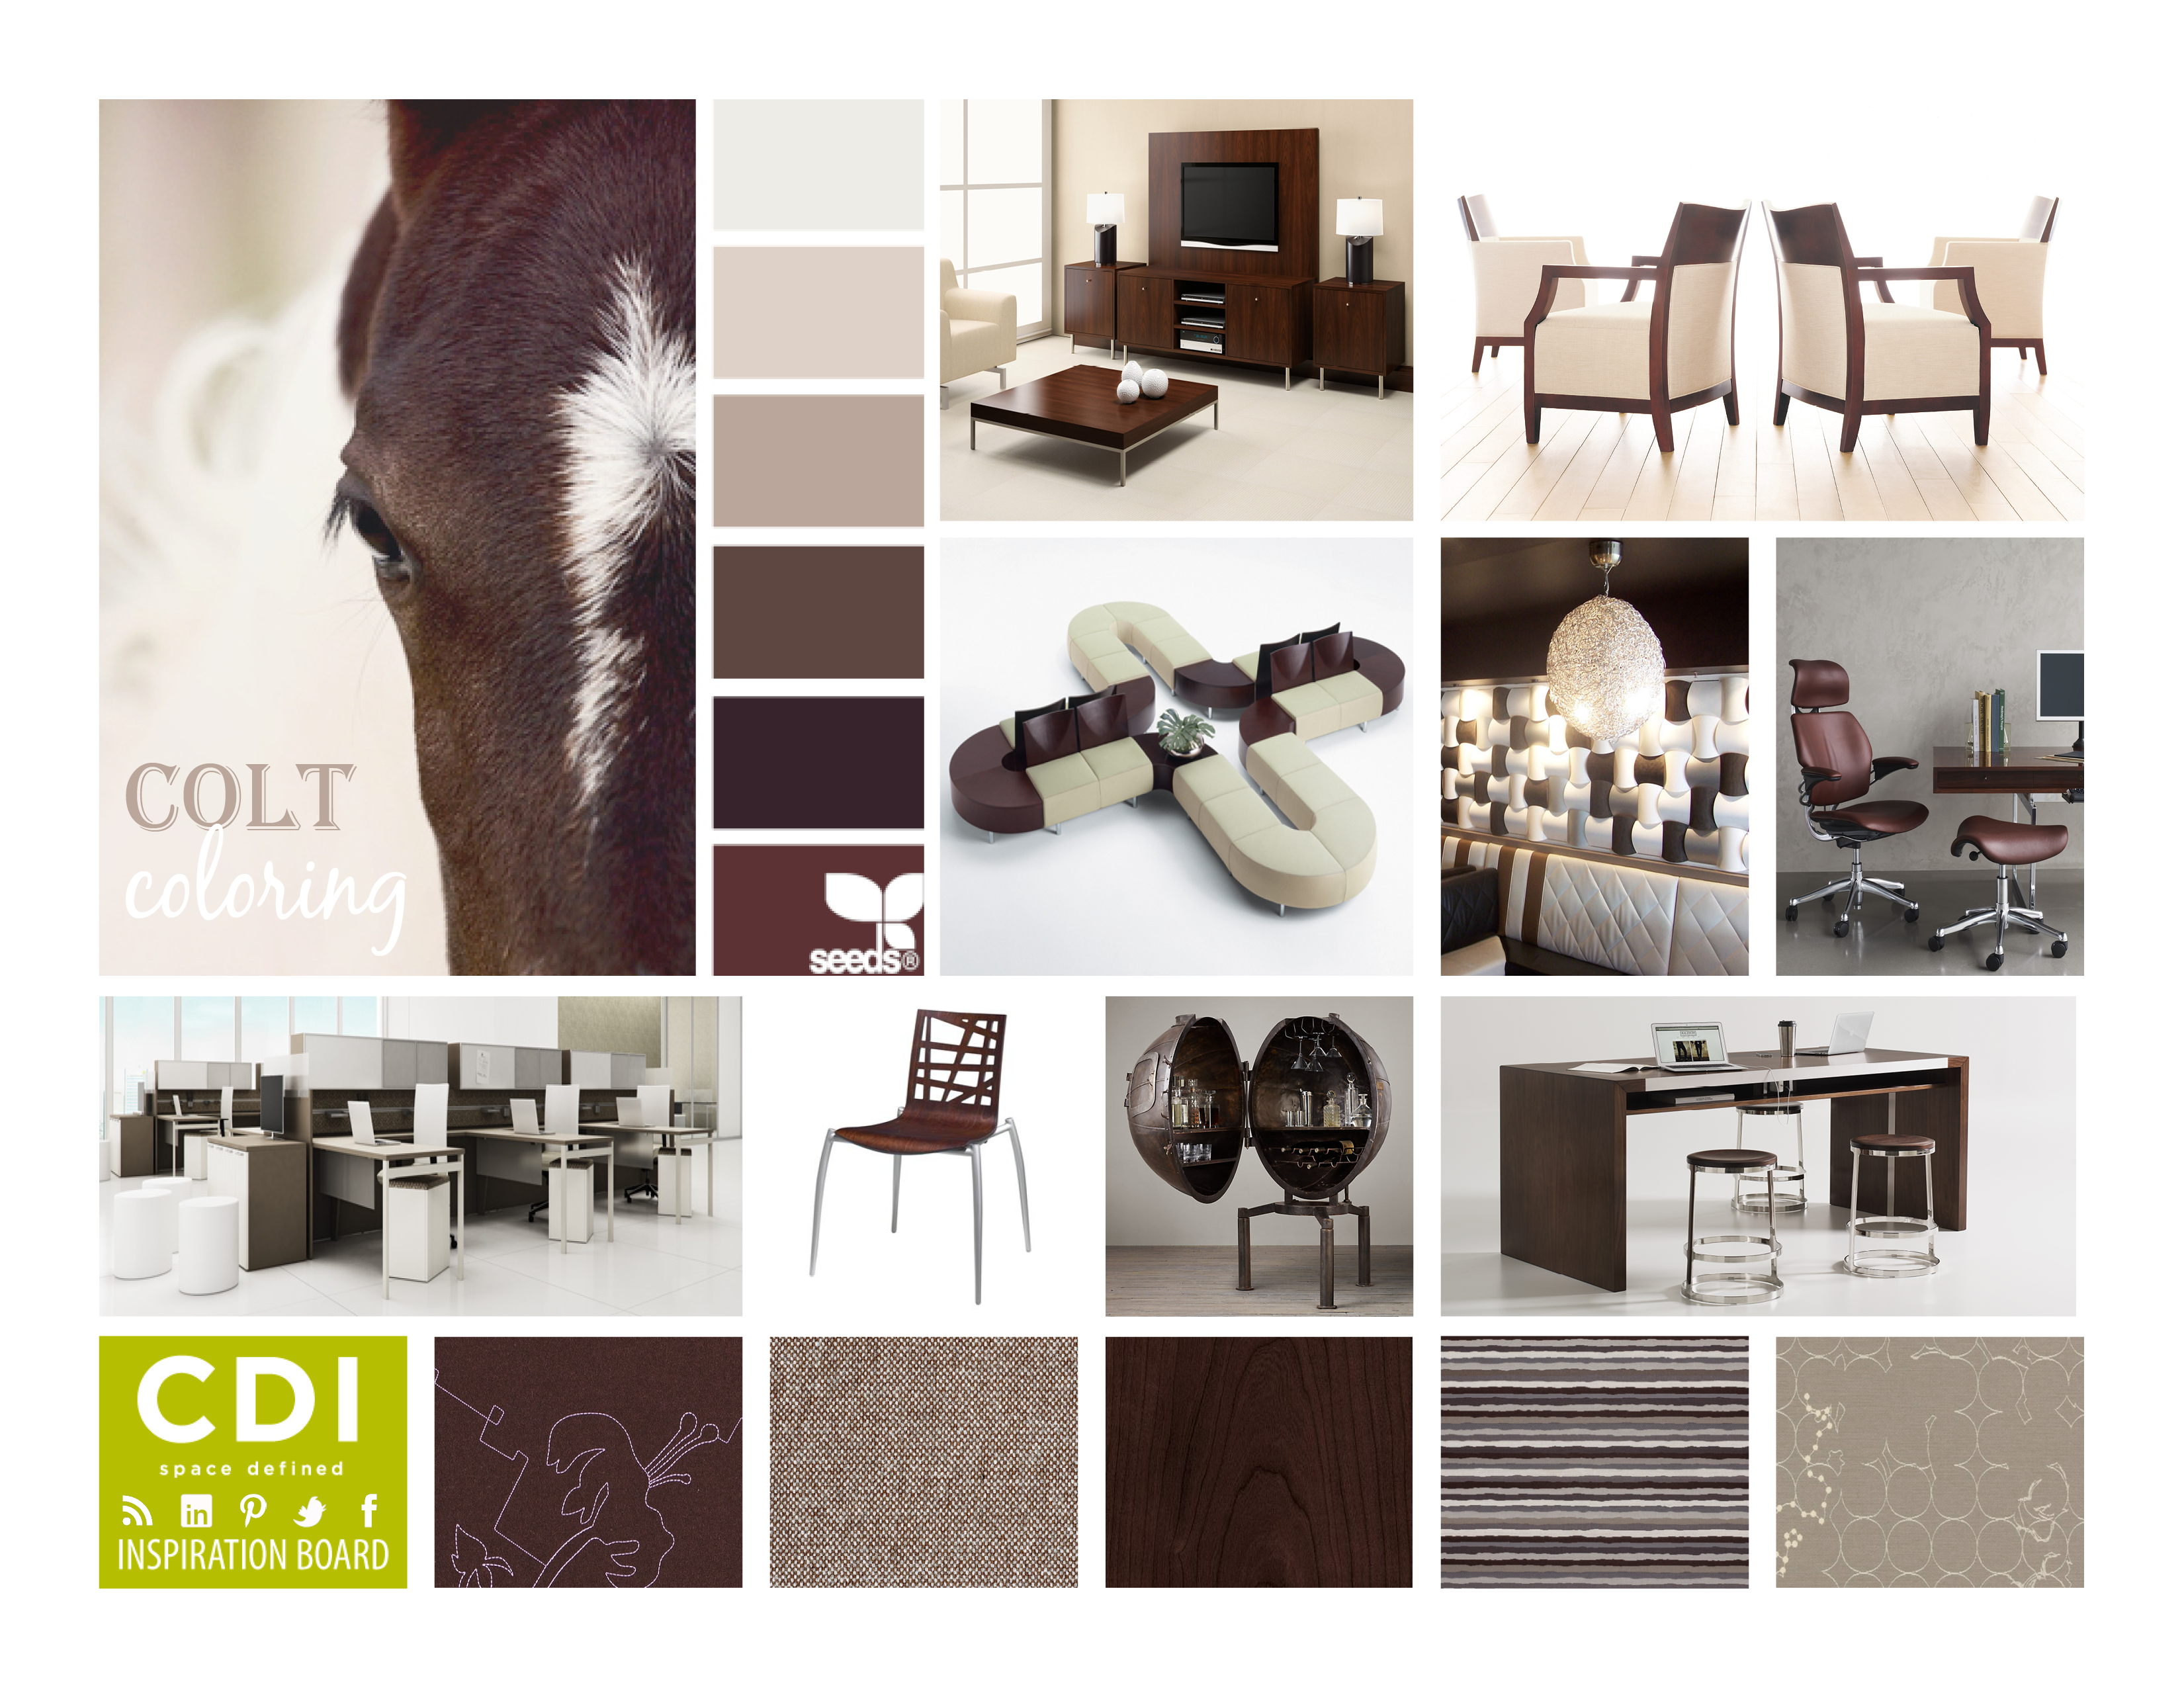 home design inspiration board 28 images office  : cdi inspiration board colt coloring from wallpapersist.com size 3301 x 2550 png 5348kB